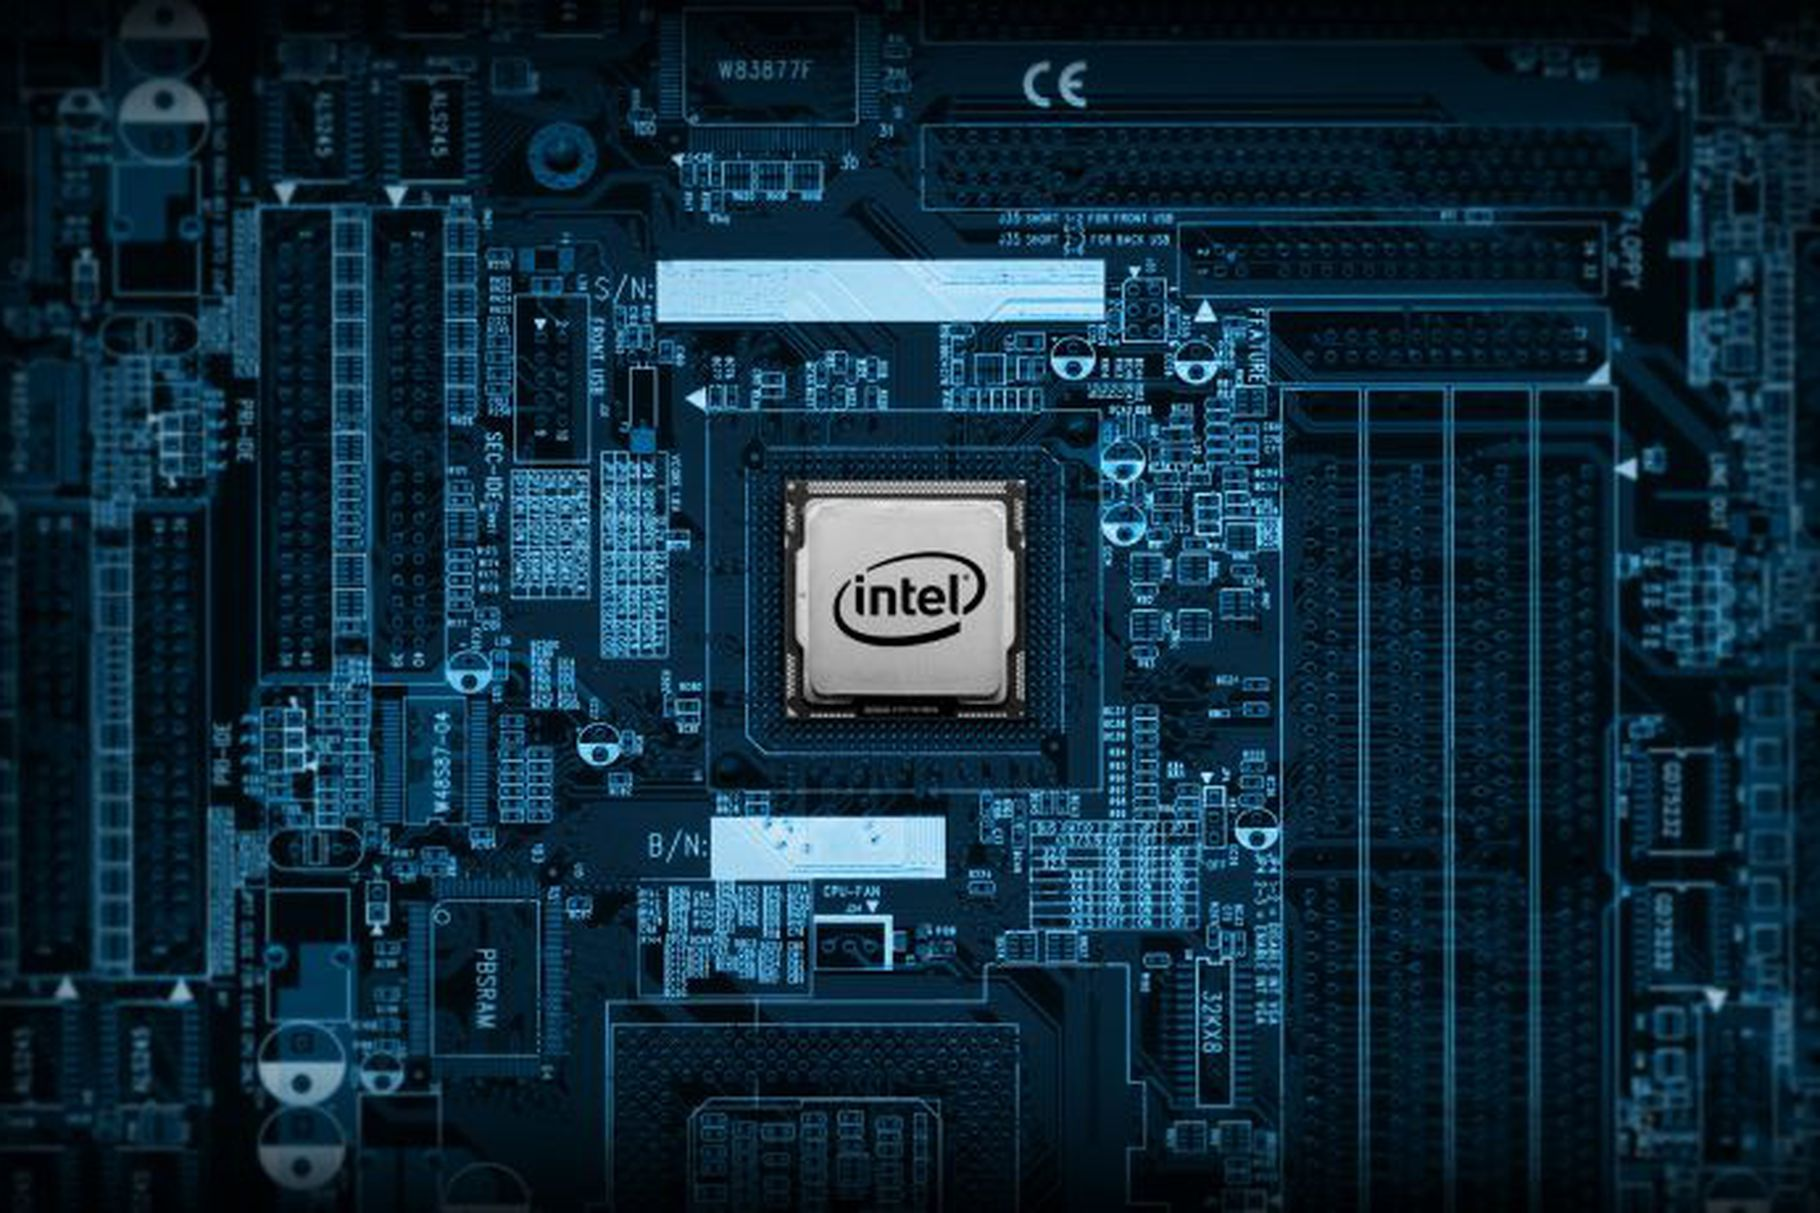 intel ordinateur quantique silicium